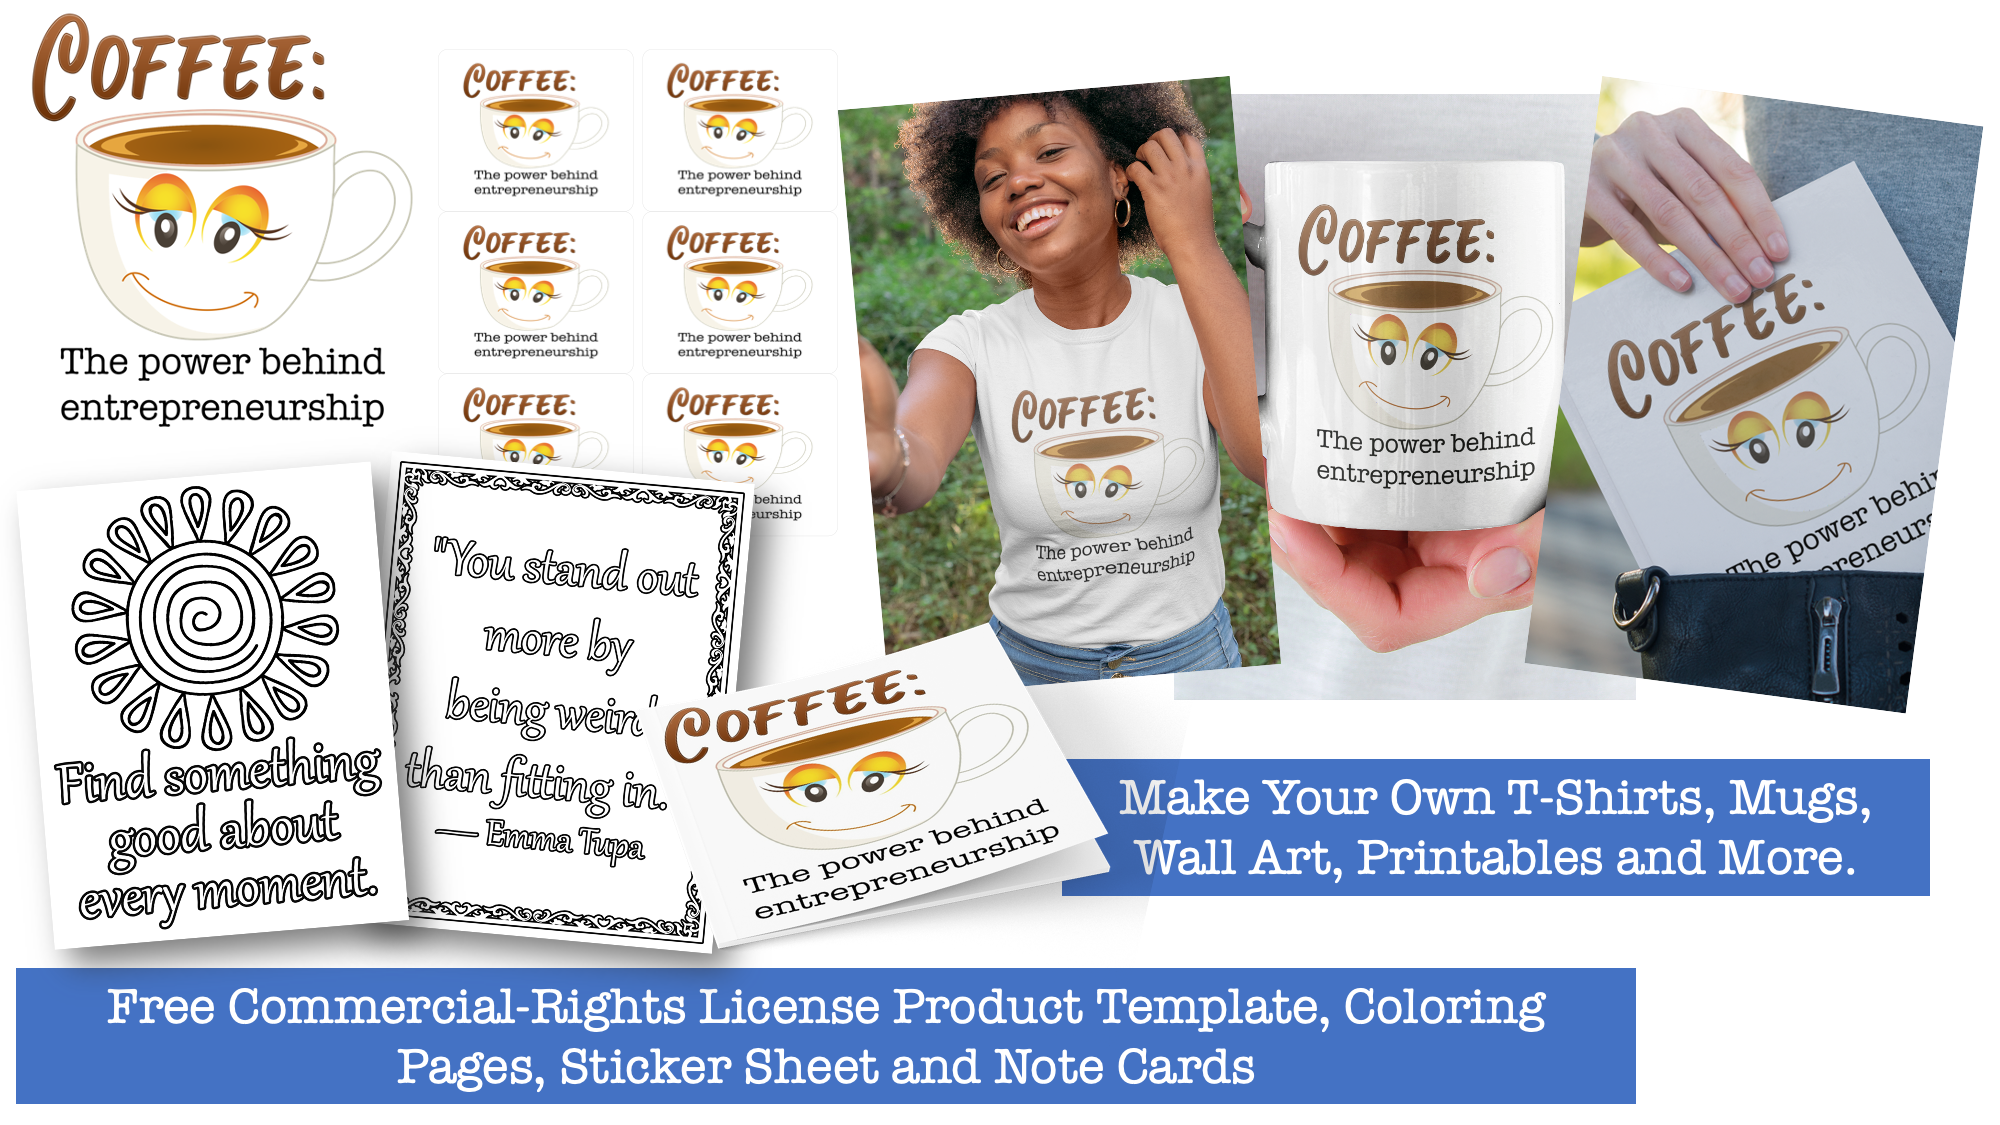 Free Product Templates and Coloring Pages with PLR Rights